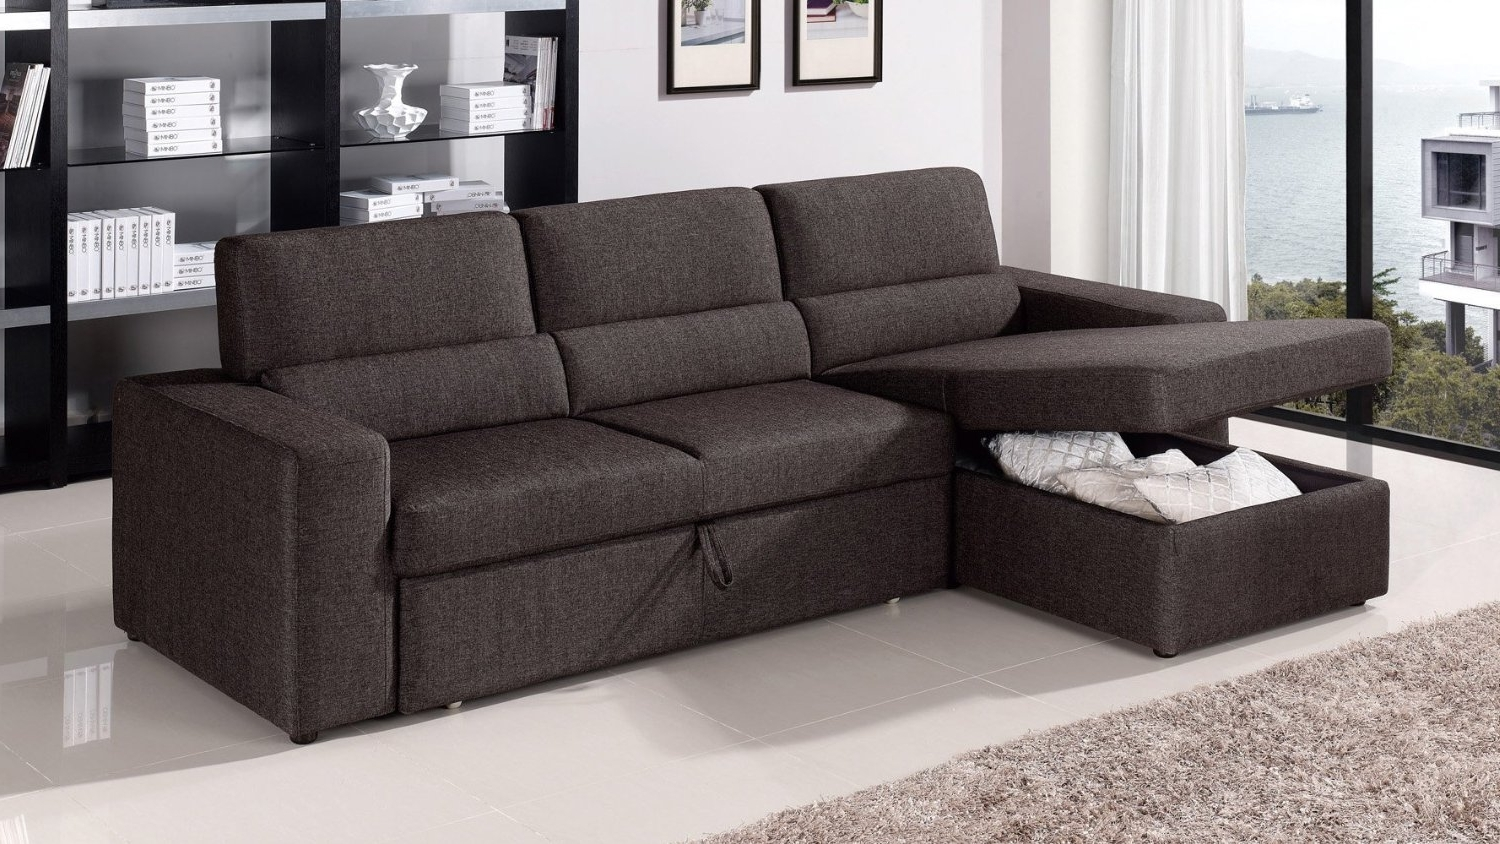 Current Sofa Sleeper With Chaise Lounge – Ansugallery For Sleeper Sofas With Chaise Lounge (View 3 of 15)